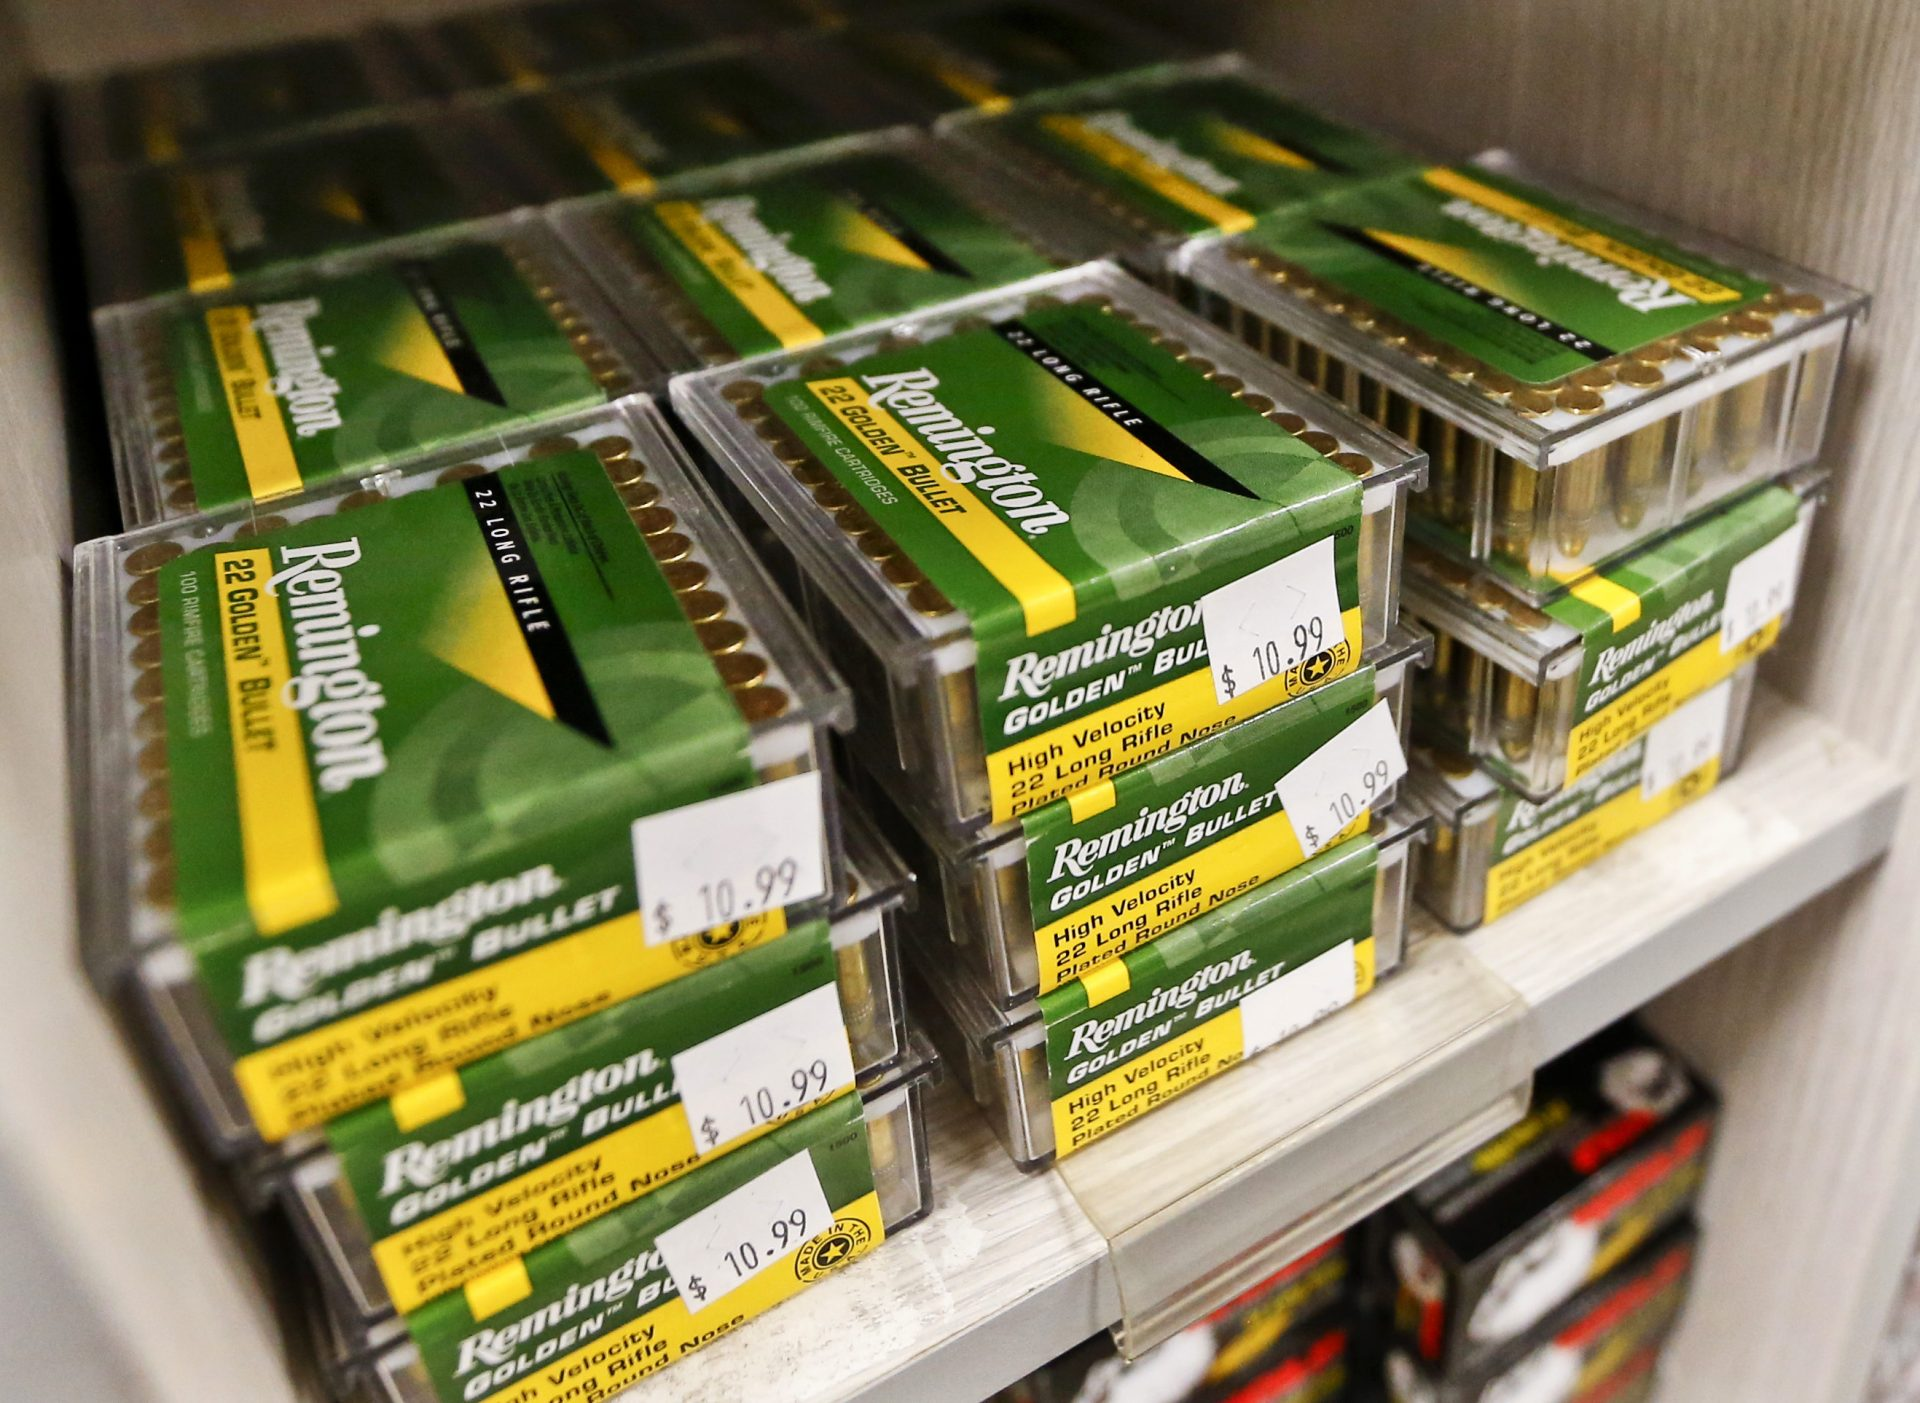 FILE- In this March 1, 2018, file photo Remington .22 LR ammunition is for sale at Duke's Sport Shop in New Castle, Pa. U.S. gun maker Remington Outdoor Company has filed for bankruptcy protection, after years of falling sales and lawsuits tied to the Sandy Hook Elementary School massacre. Records from the bankruptcy court of the district of Delaware show that the company filed late Sunday, March 25.